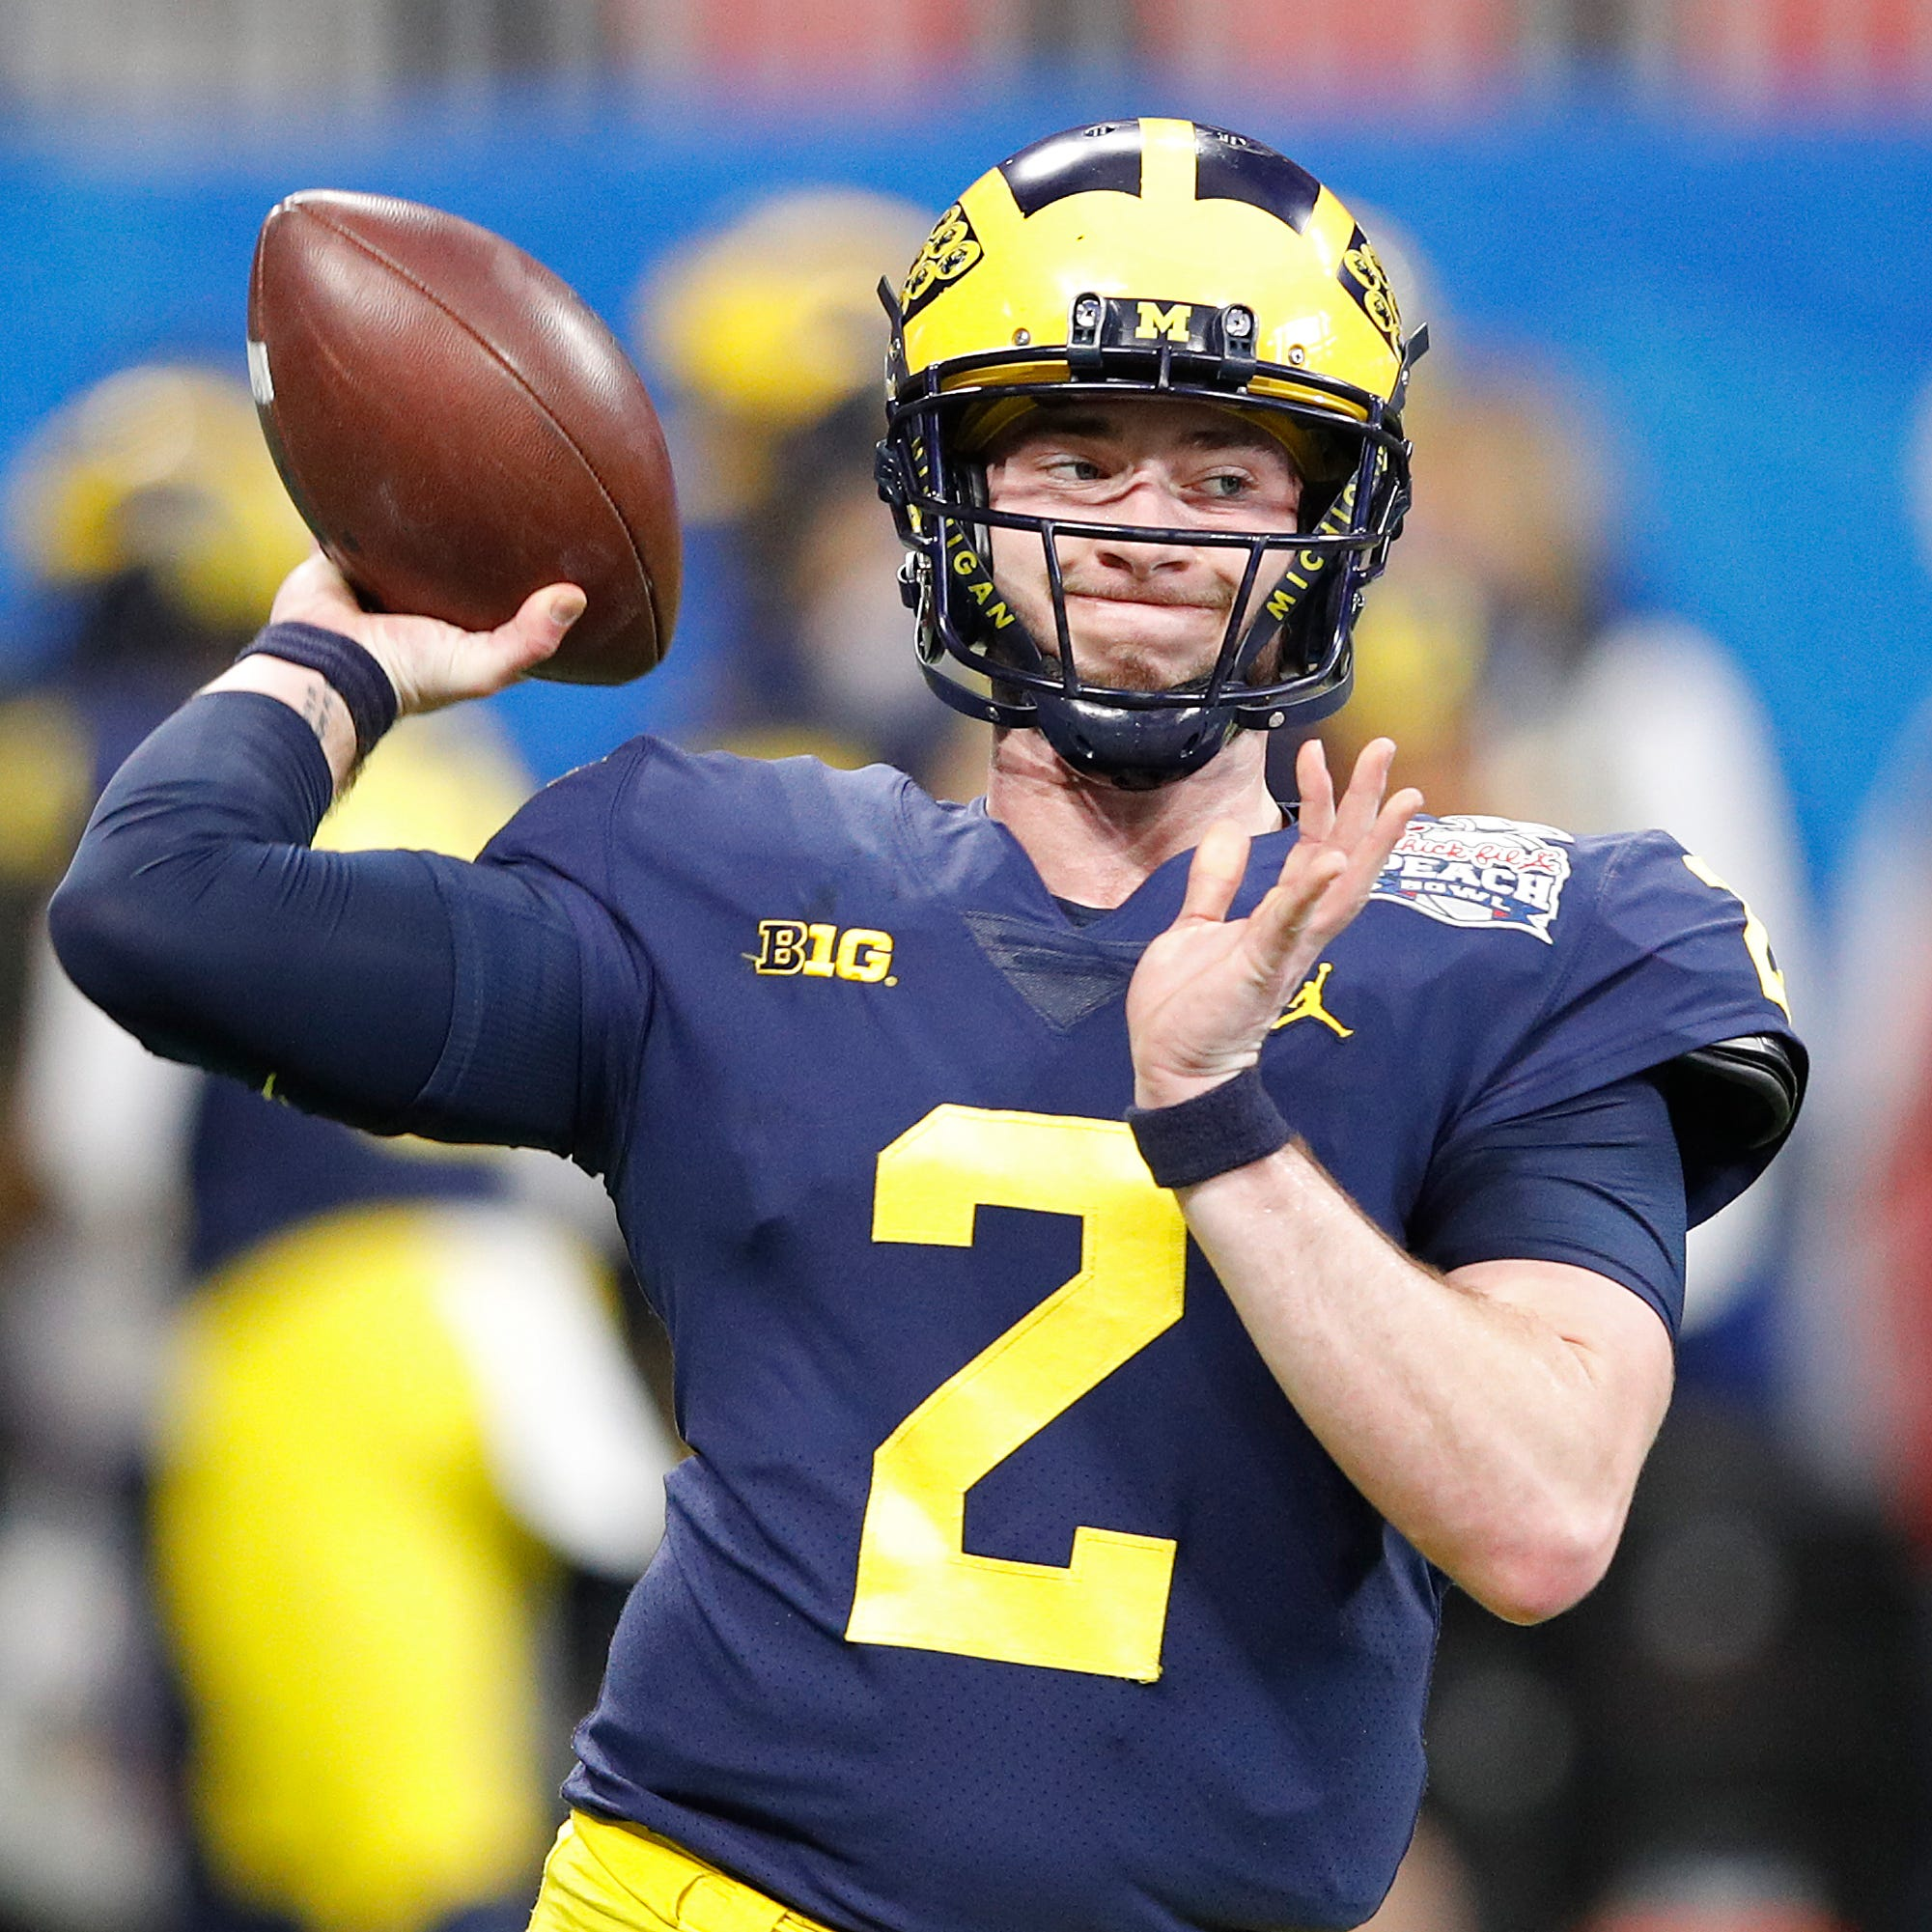 Michigan football's Shea Patterson 'acing' new offense under Josh Gattis